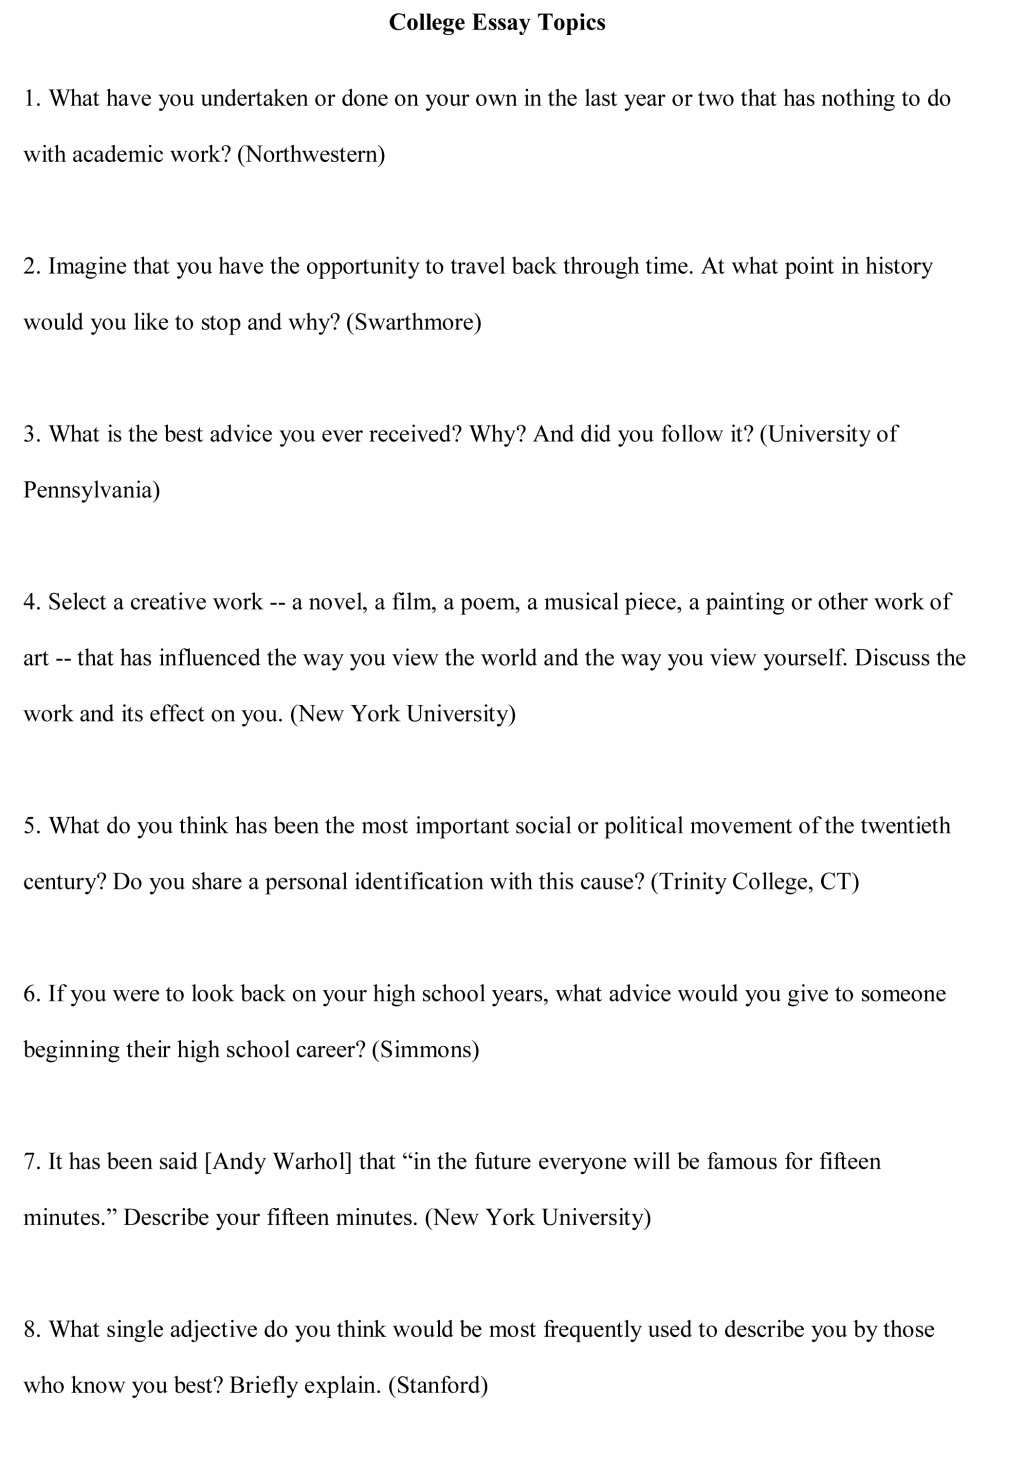 009 Research Paper Psychology Topics List College Essay Free Awesome Topic Ideas Large